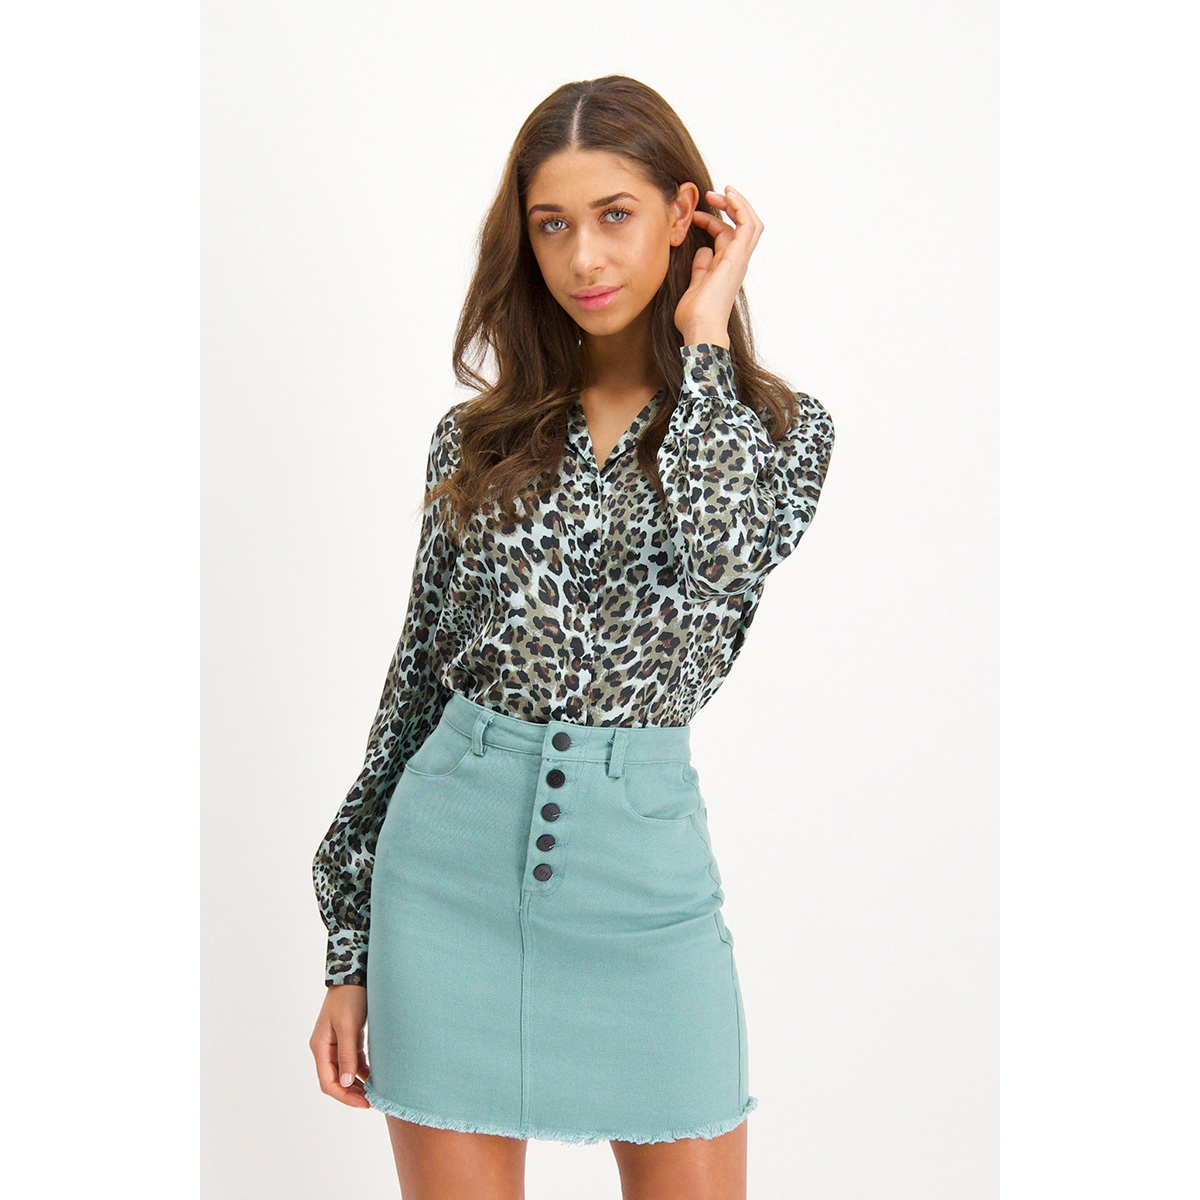 mg62 blouse shirley lofty manner blouse mint